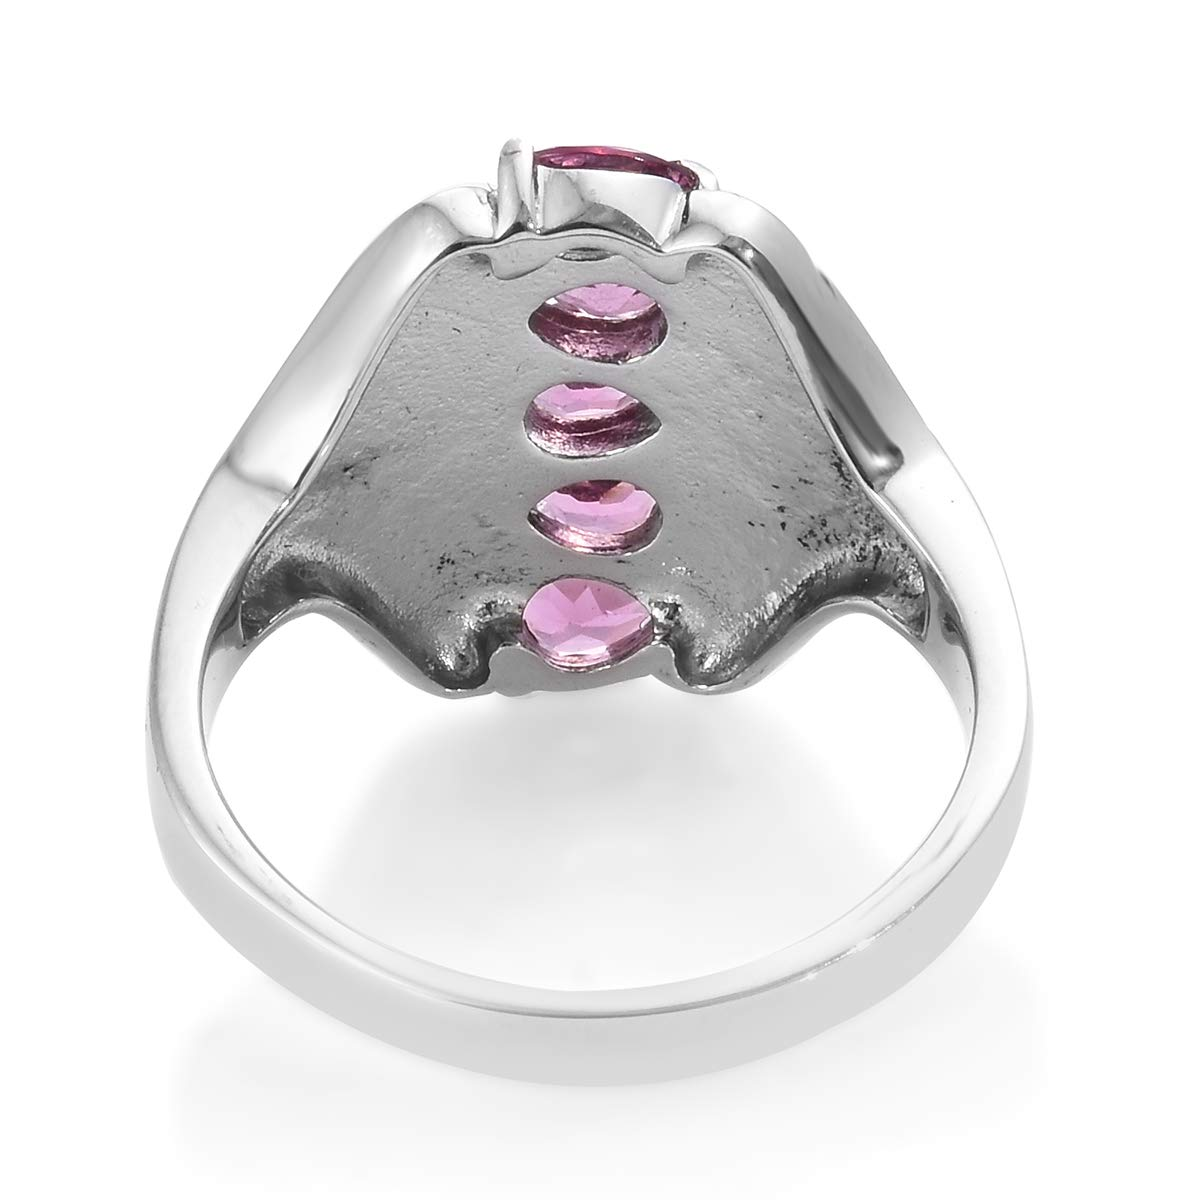 Shop LC Delivering Joy Statement Ring Stainless Steel Pear Rose Garnet Gift Jewelry for Women Size 9 Ct 1.6